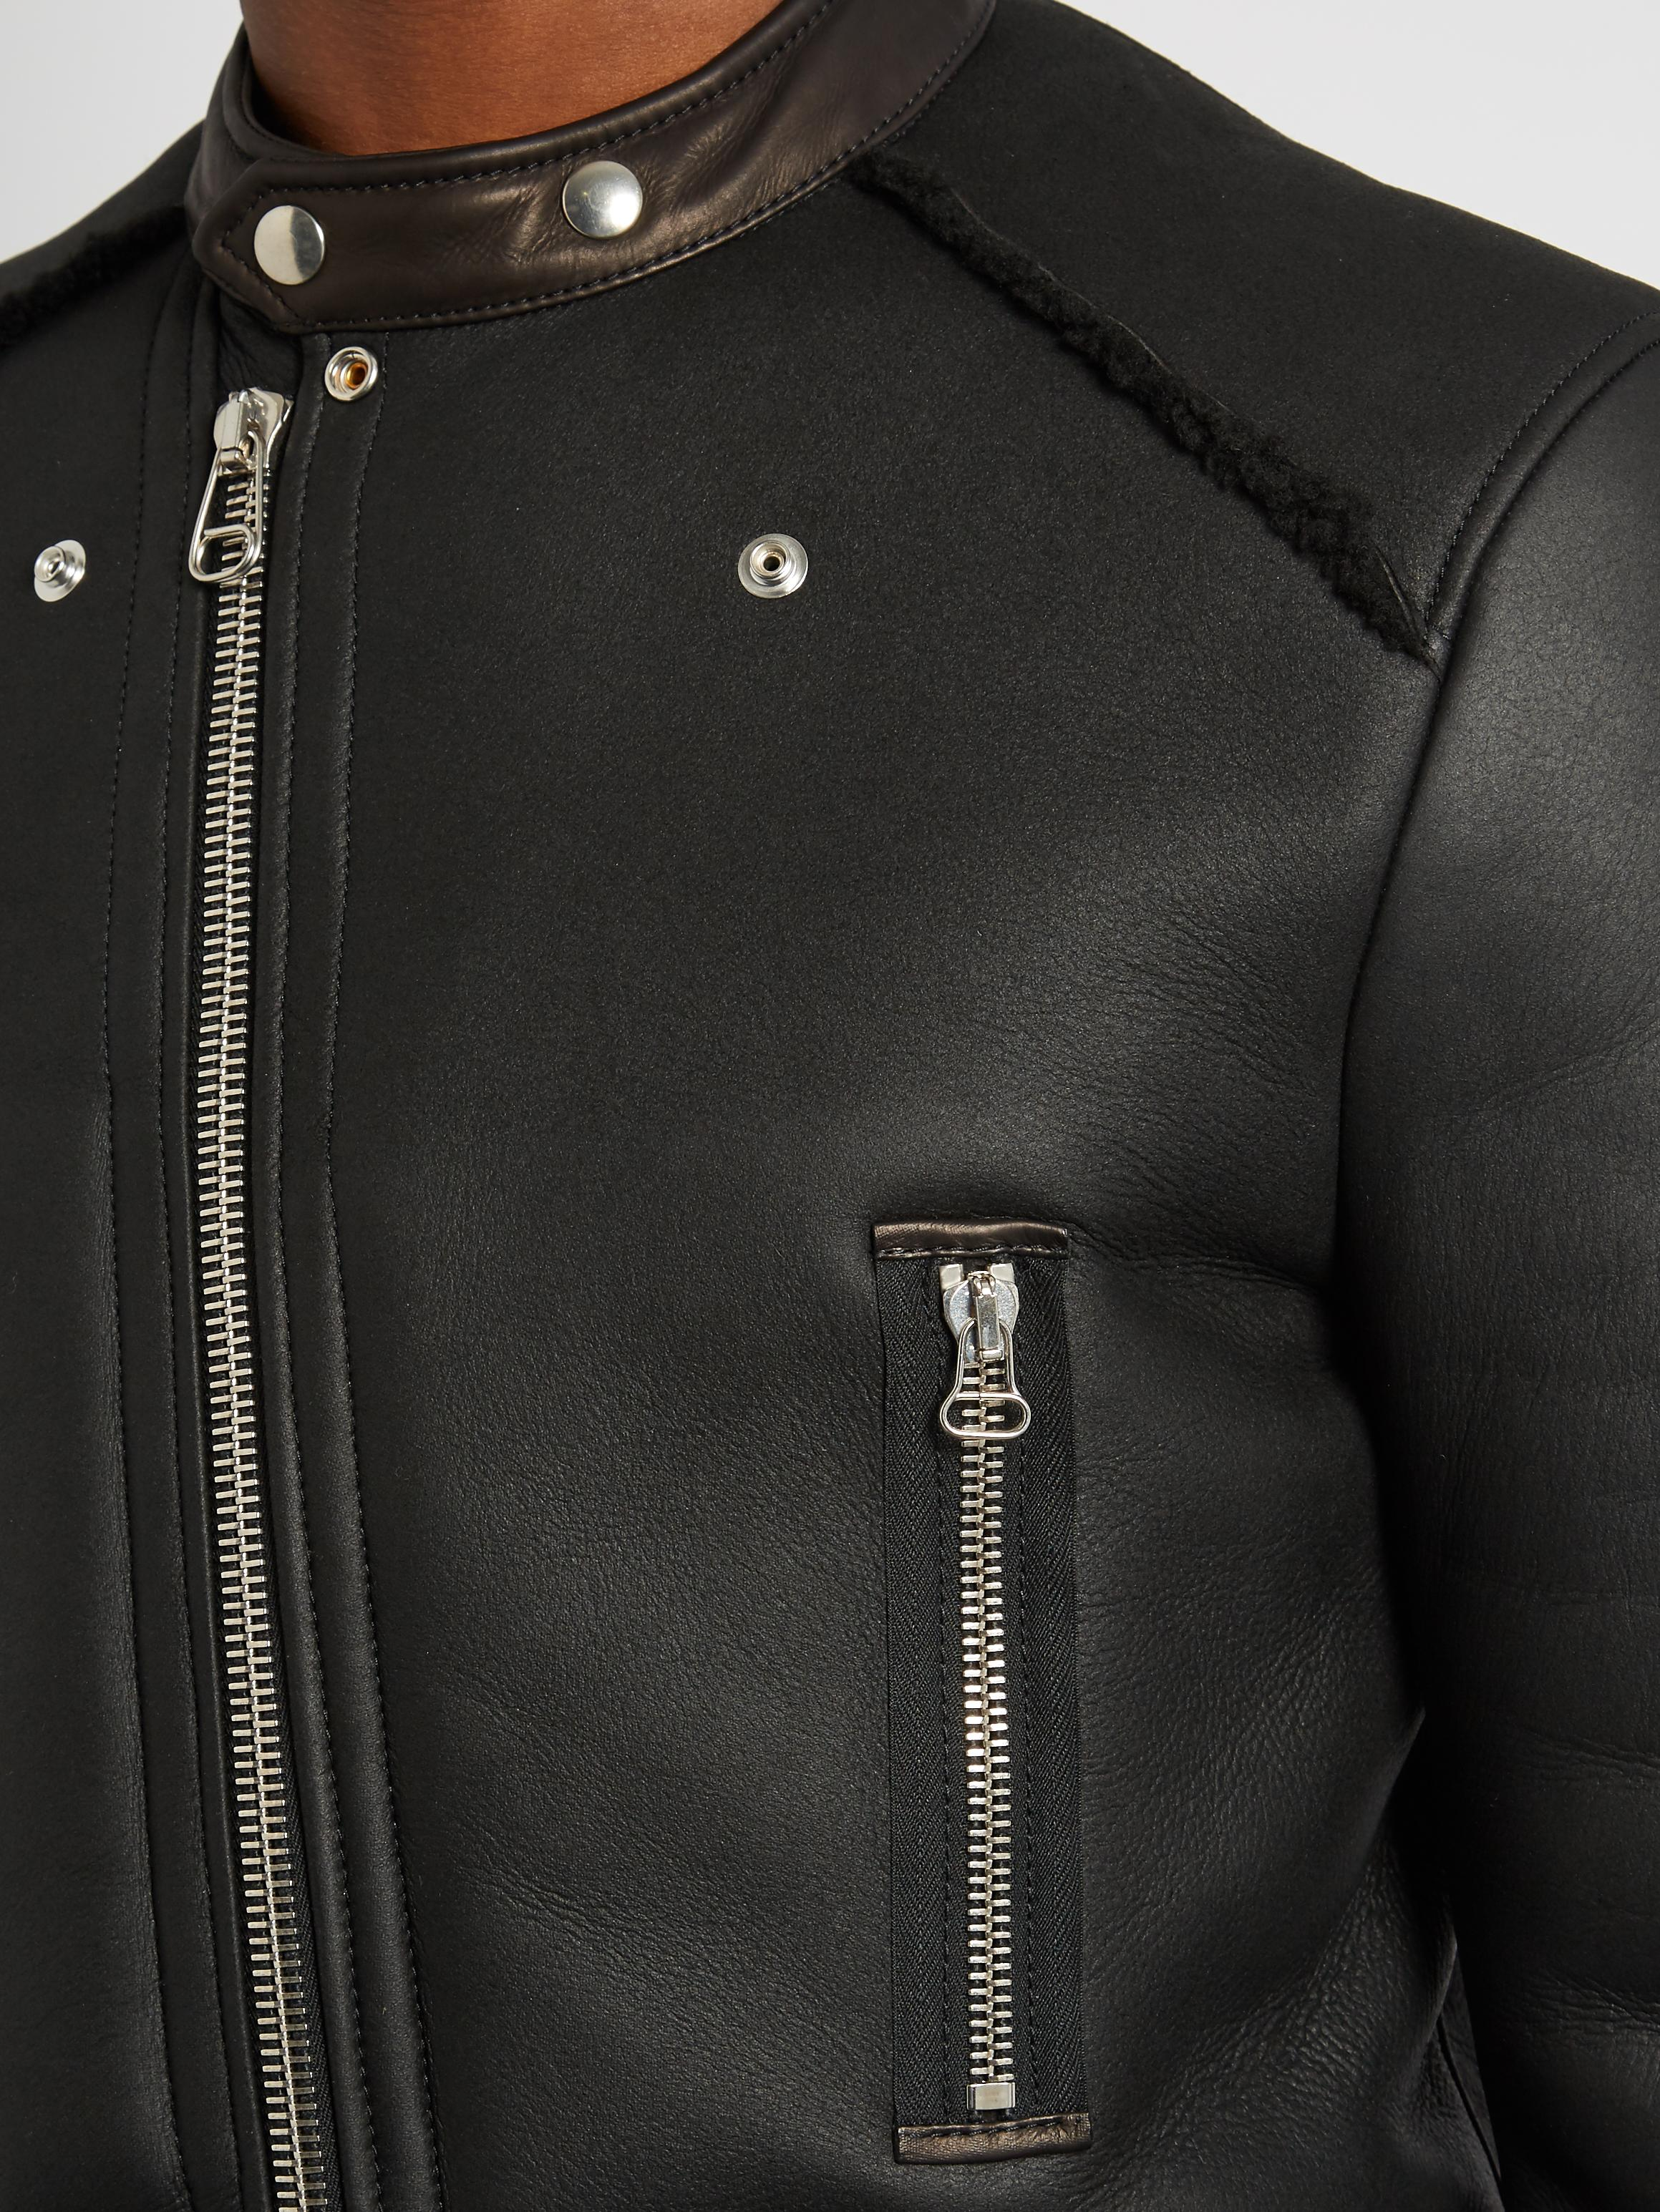 Lanvin Leather Collarless Shearling Jacket in Black for Men